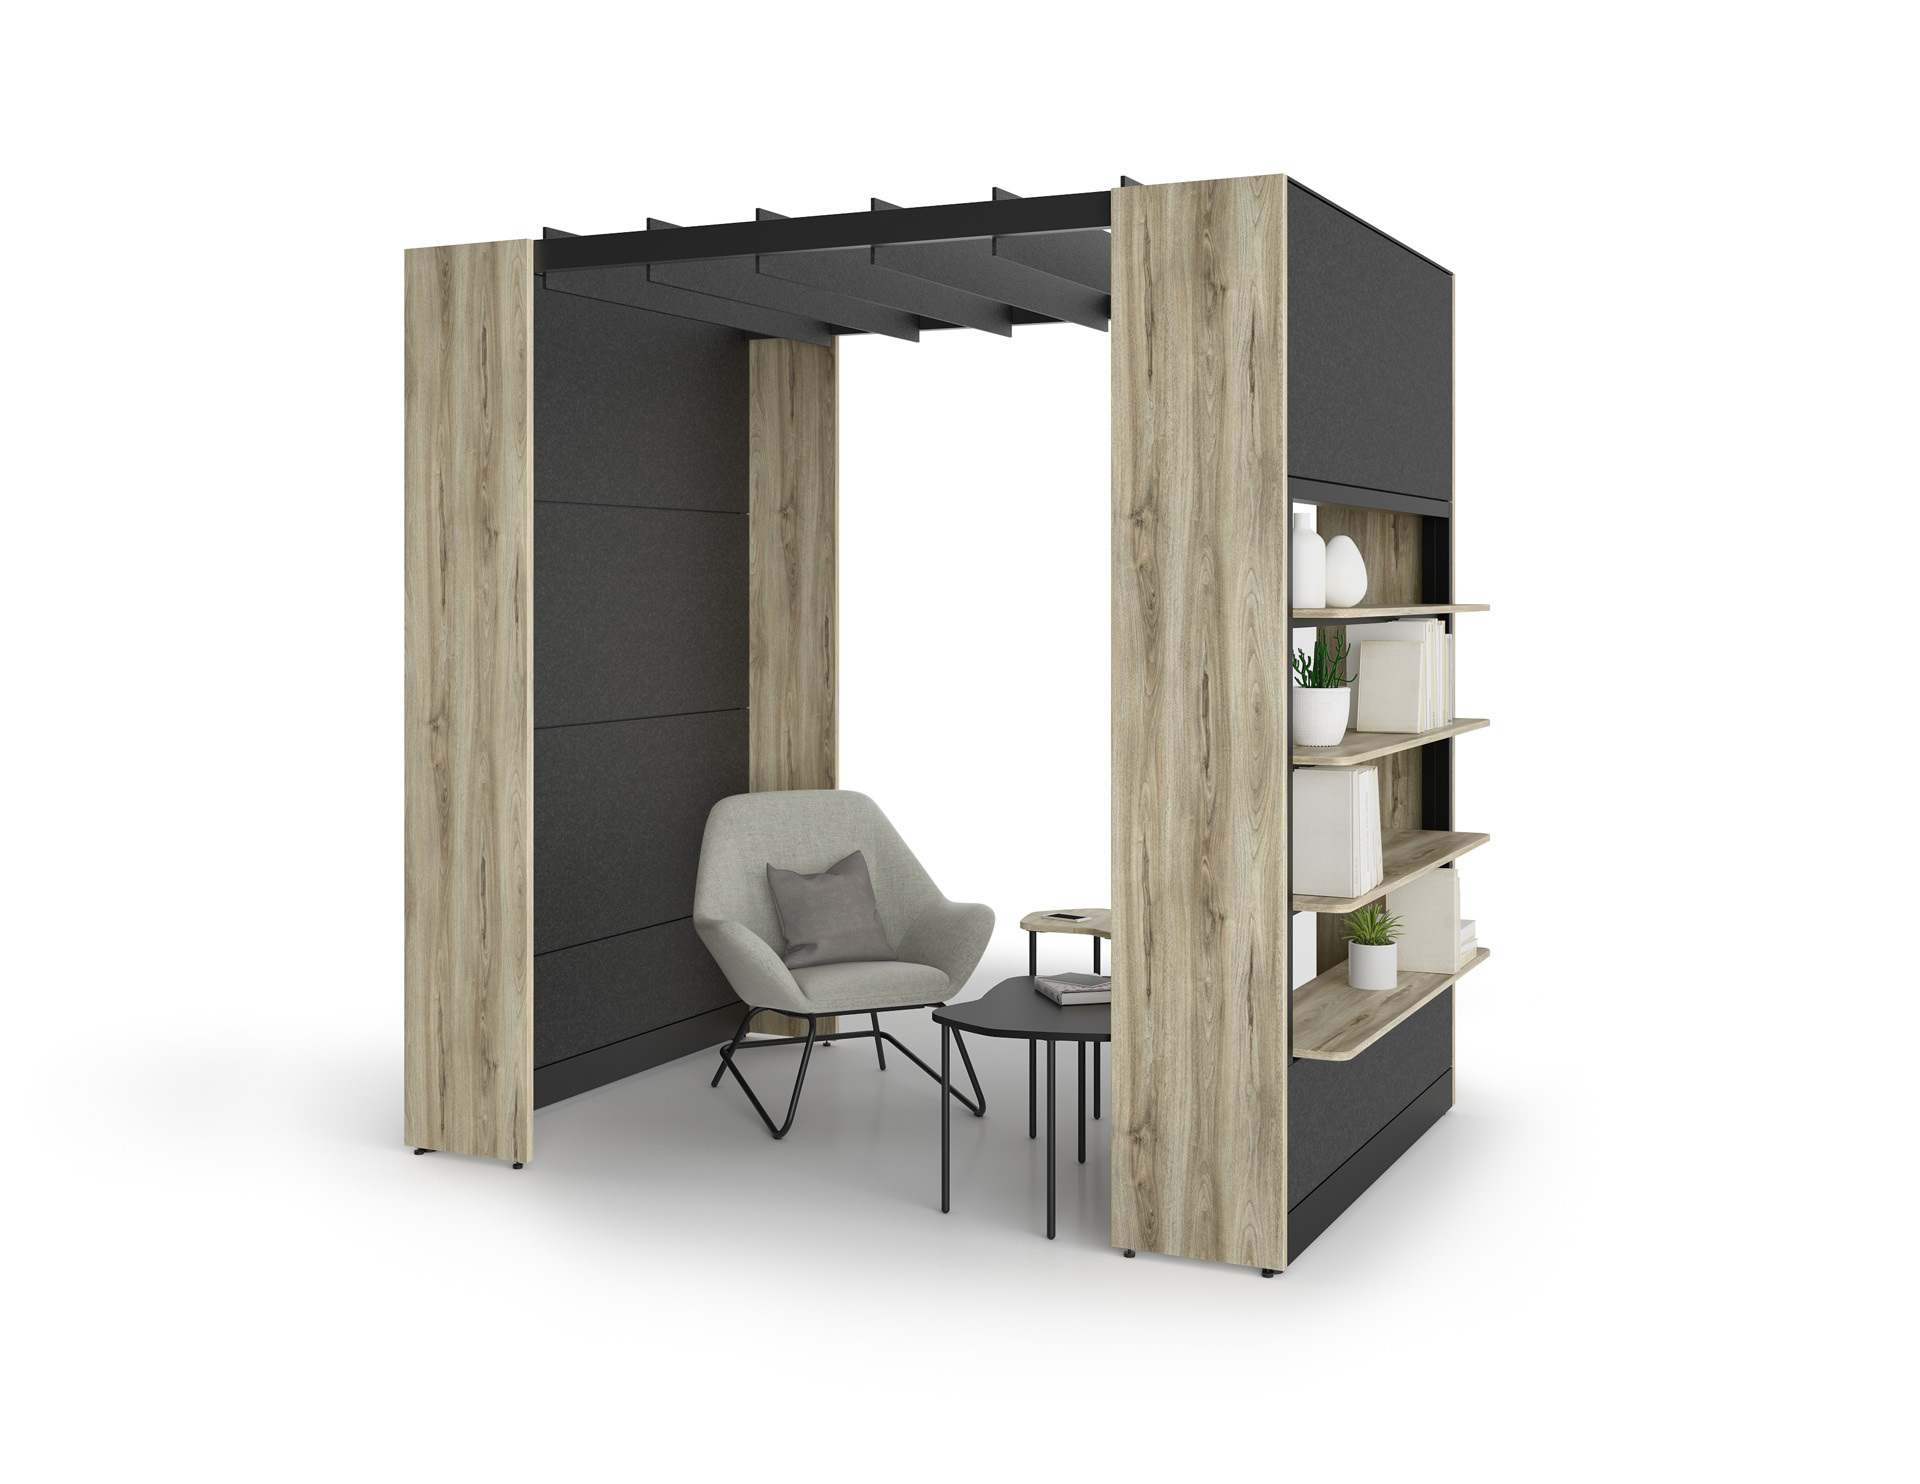 Axel Urban Design Projet Sharing Space Work Station Wood Public Val D Or Gyva Office